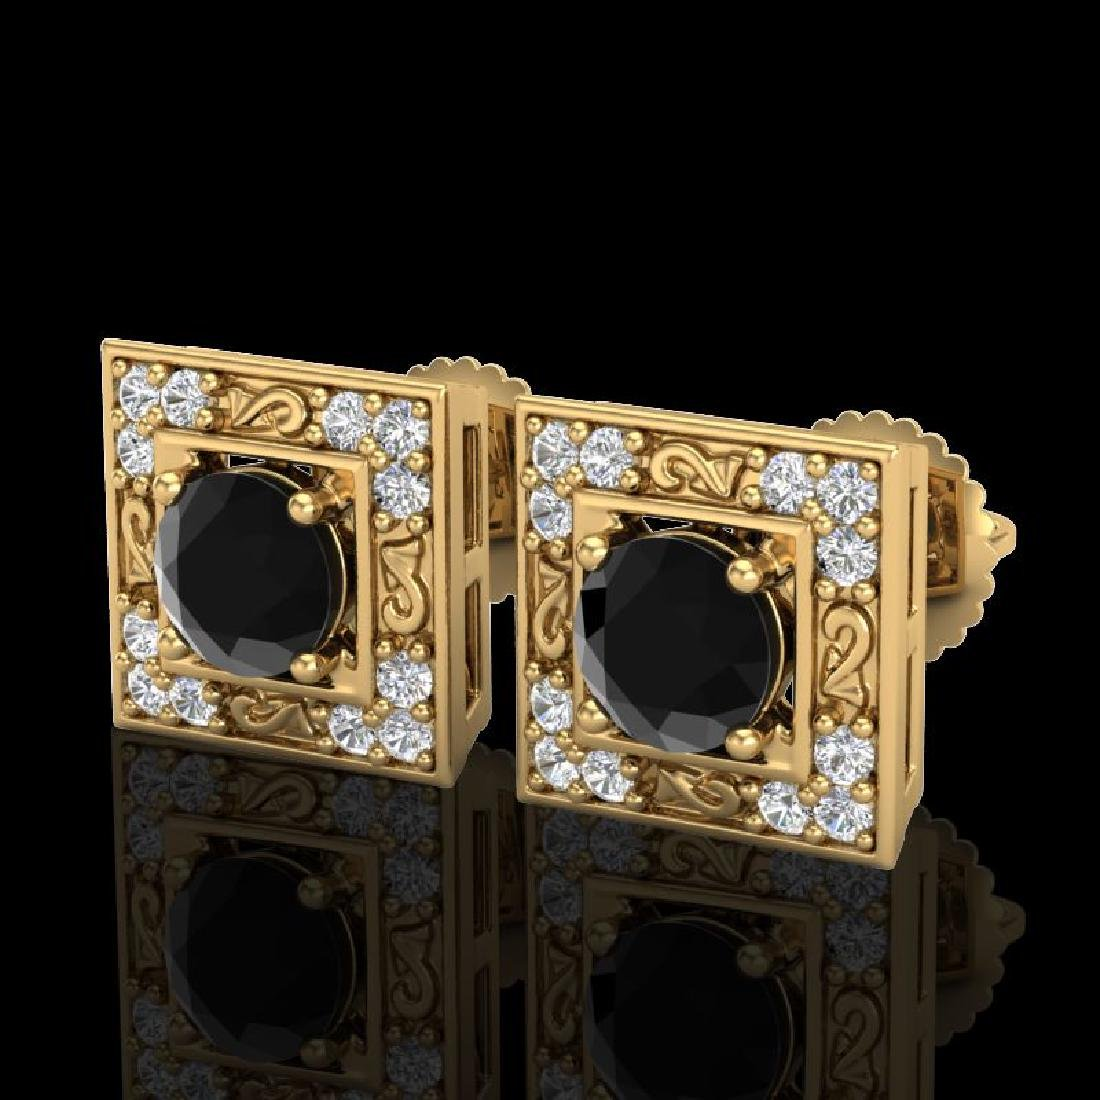 1.63 CTW Fancy Black Diamond Solitaire Art Deco Stud